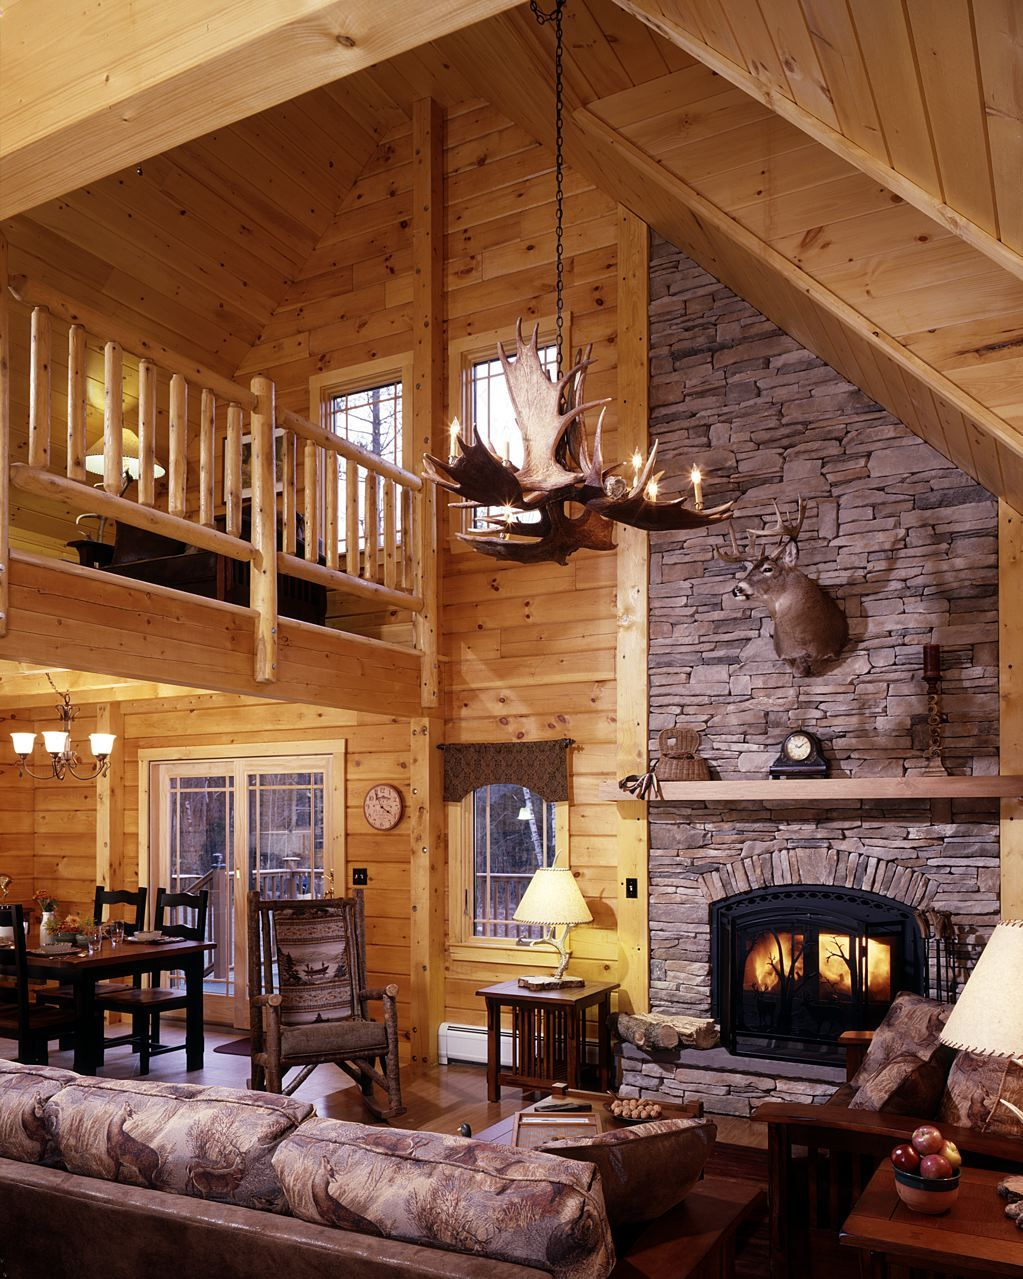 Pictures Of Log Cabin Homes Inside And Out Field Stream To Feature Its New Dream In February Issue